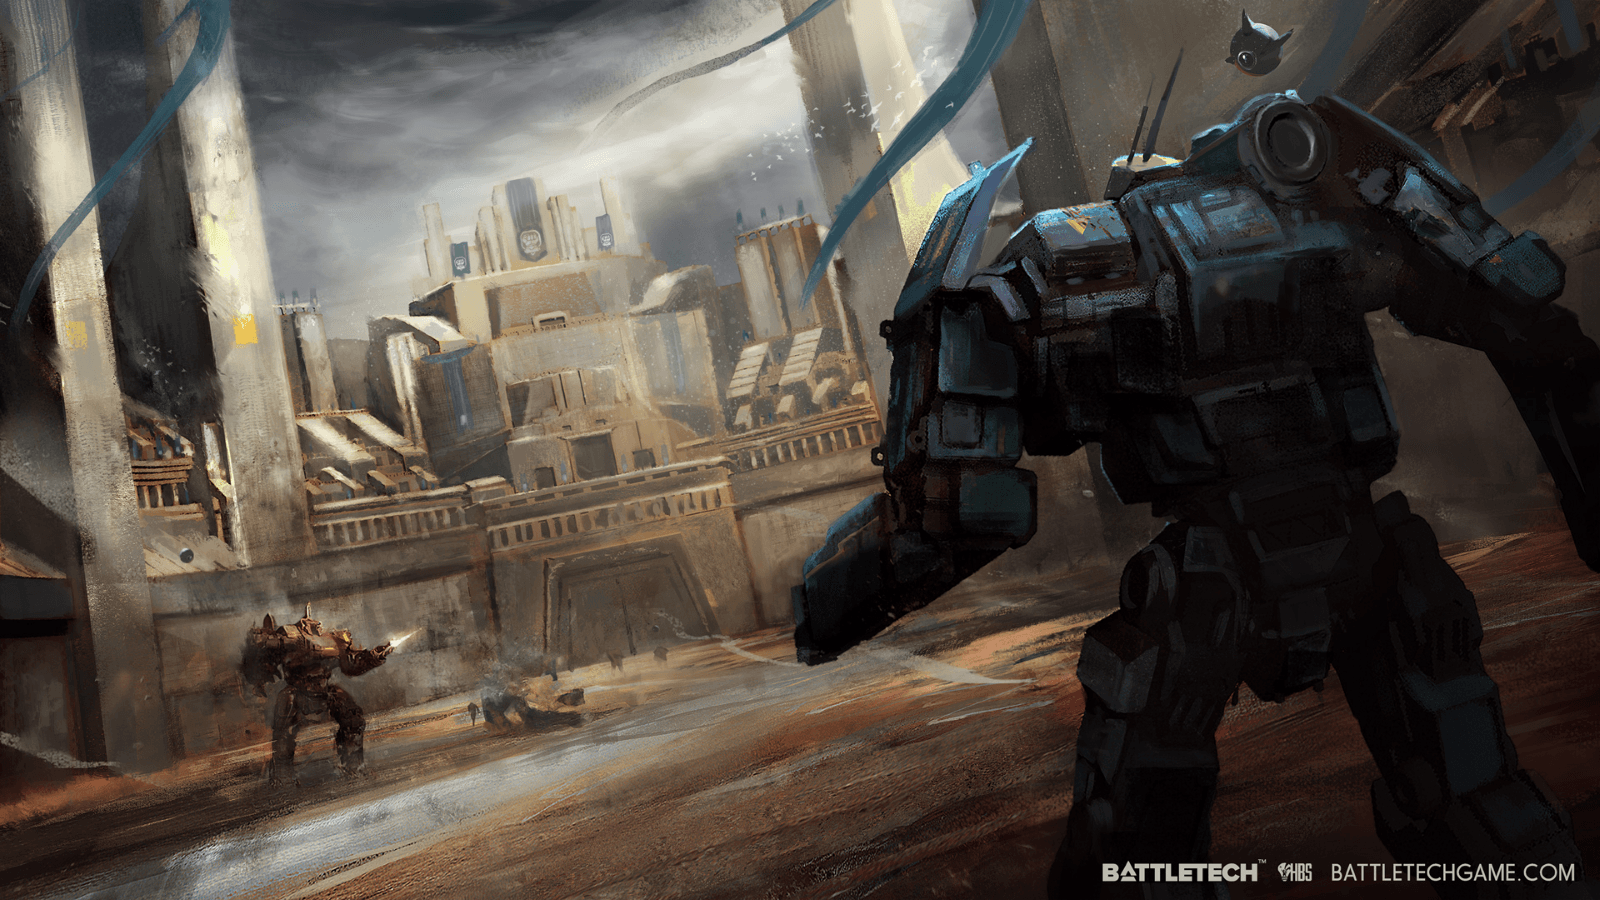 BattleTech Hits $2.5M and Unlocks PVP Multiplayer video thumbnail